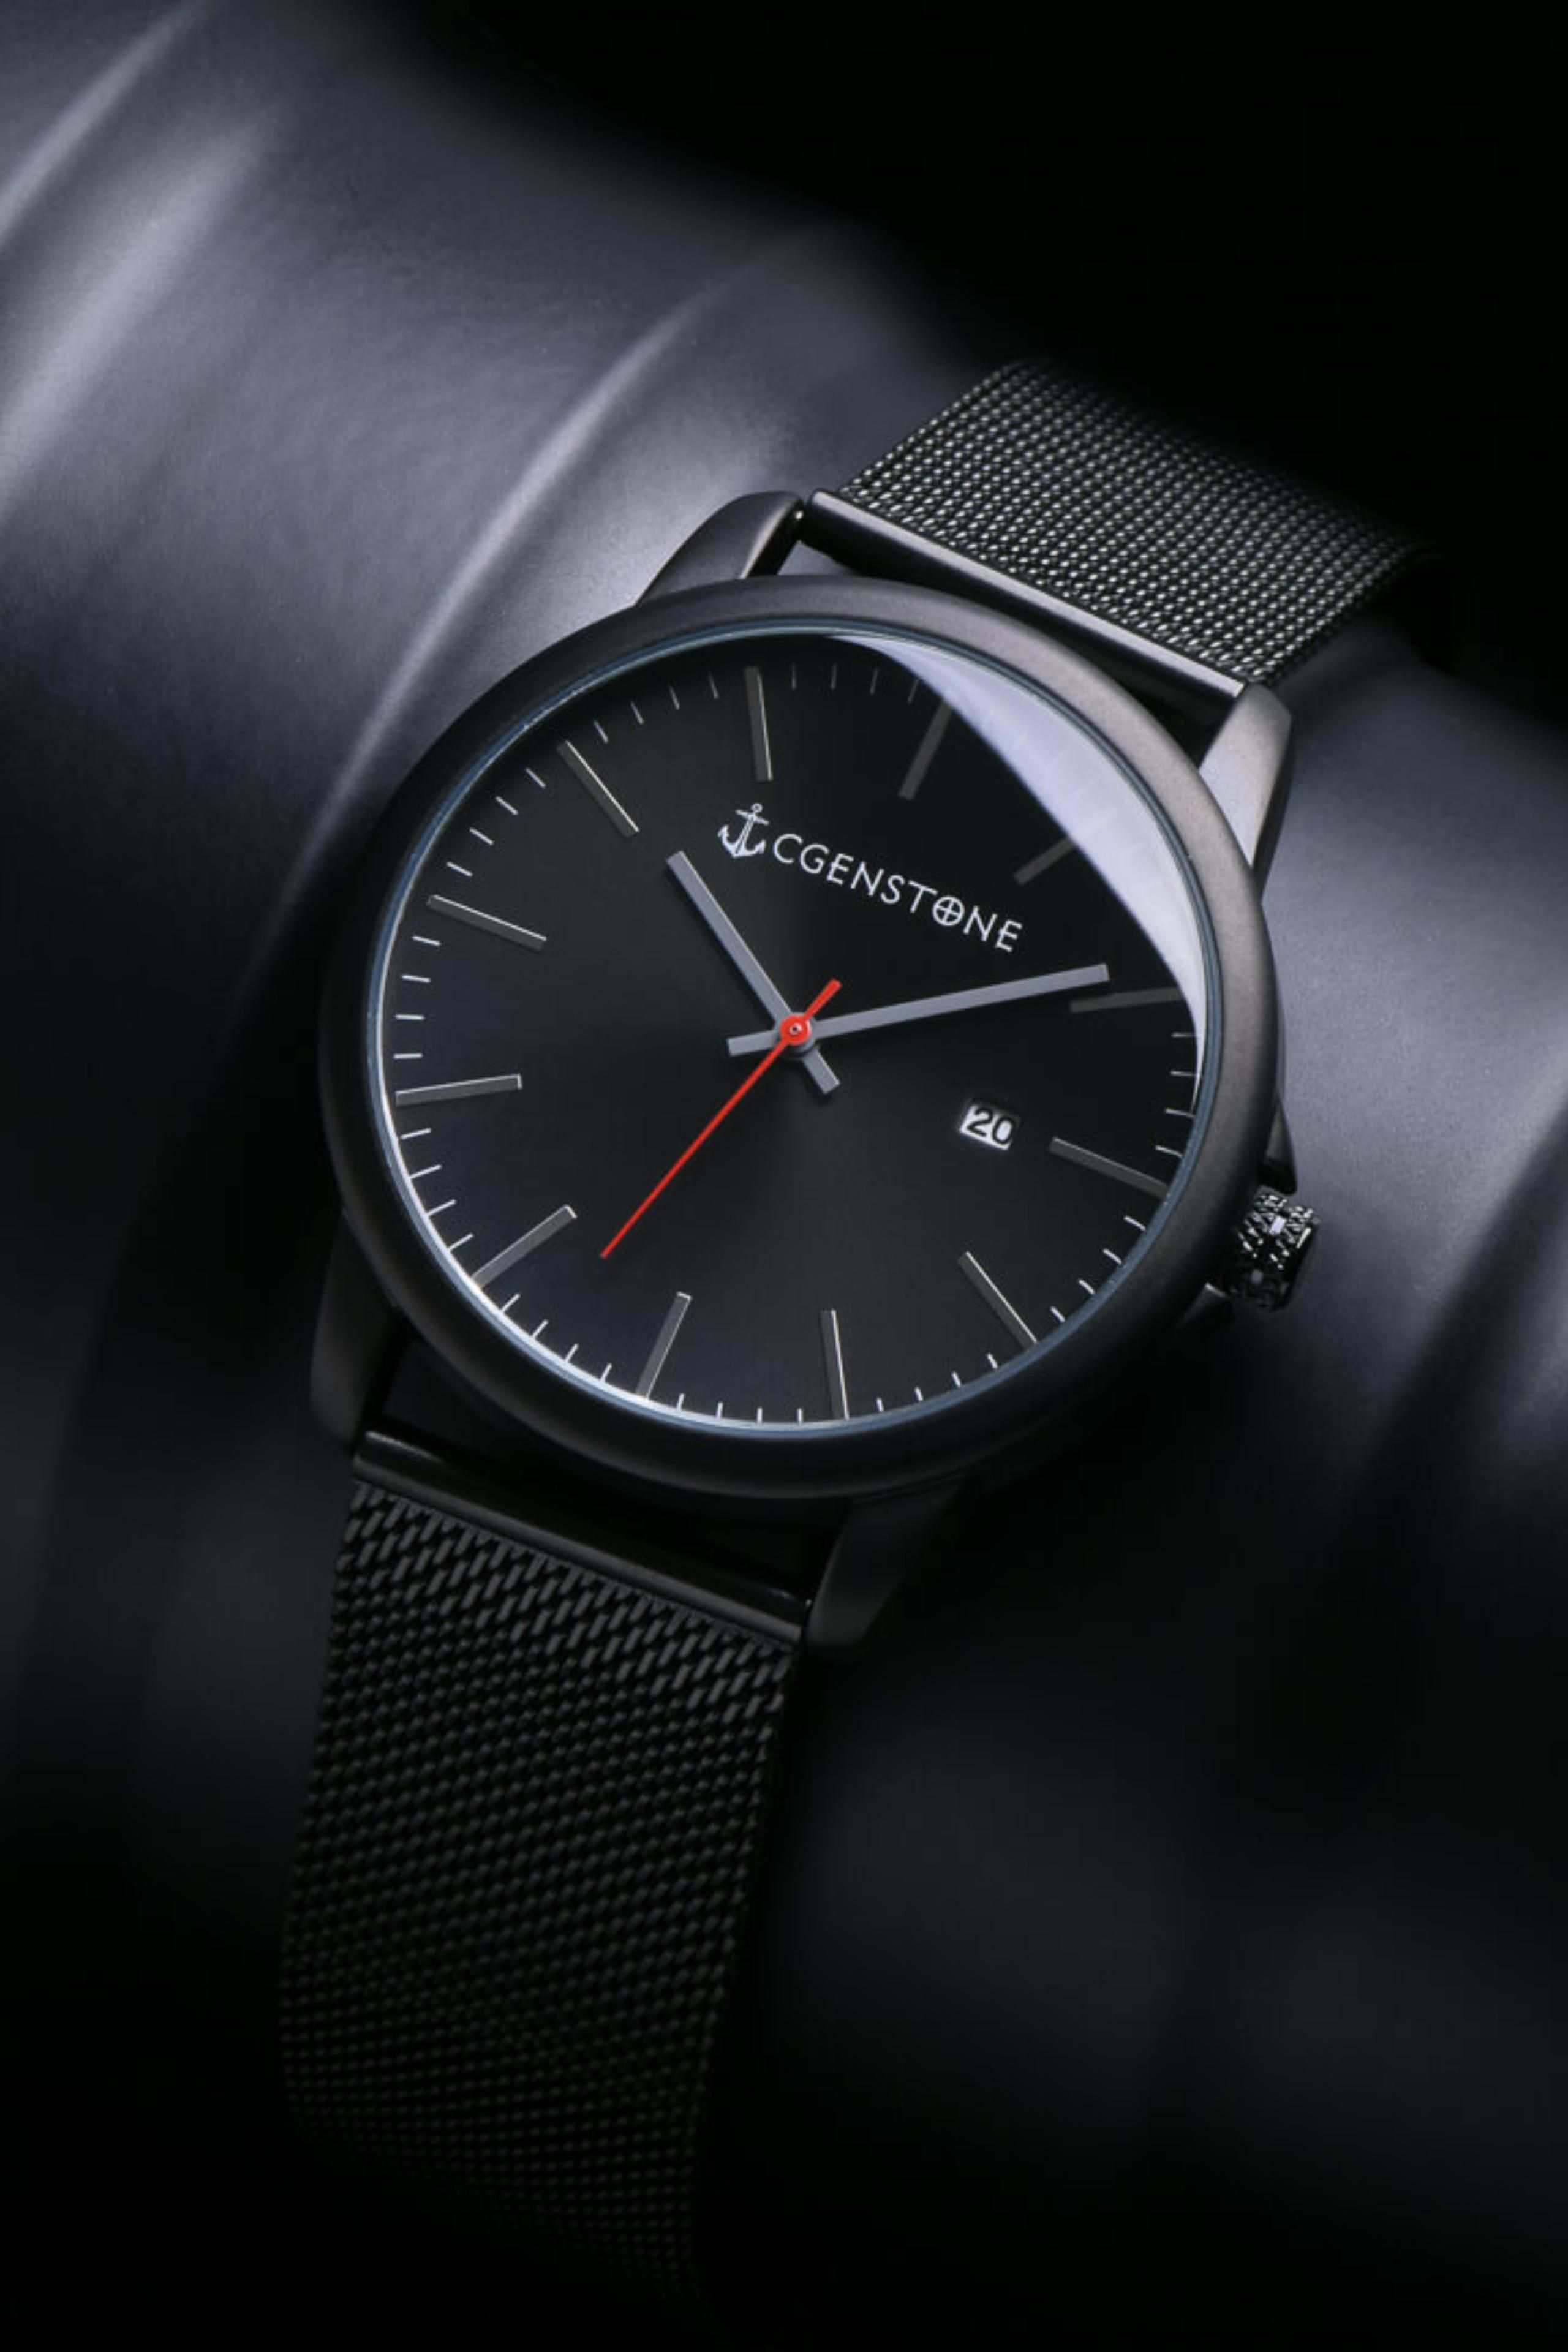 d8f3efa26a26 Affordable watches for men gift - Free Shipping On All Order - Men Watches  - Gift for him - watches for men affordable - Cgenstone - Black Watch.